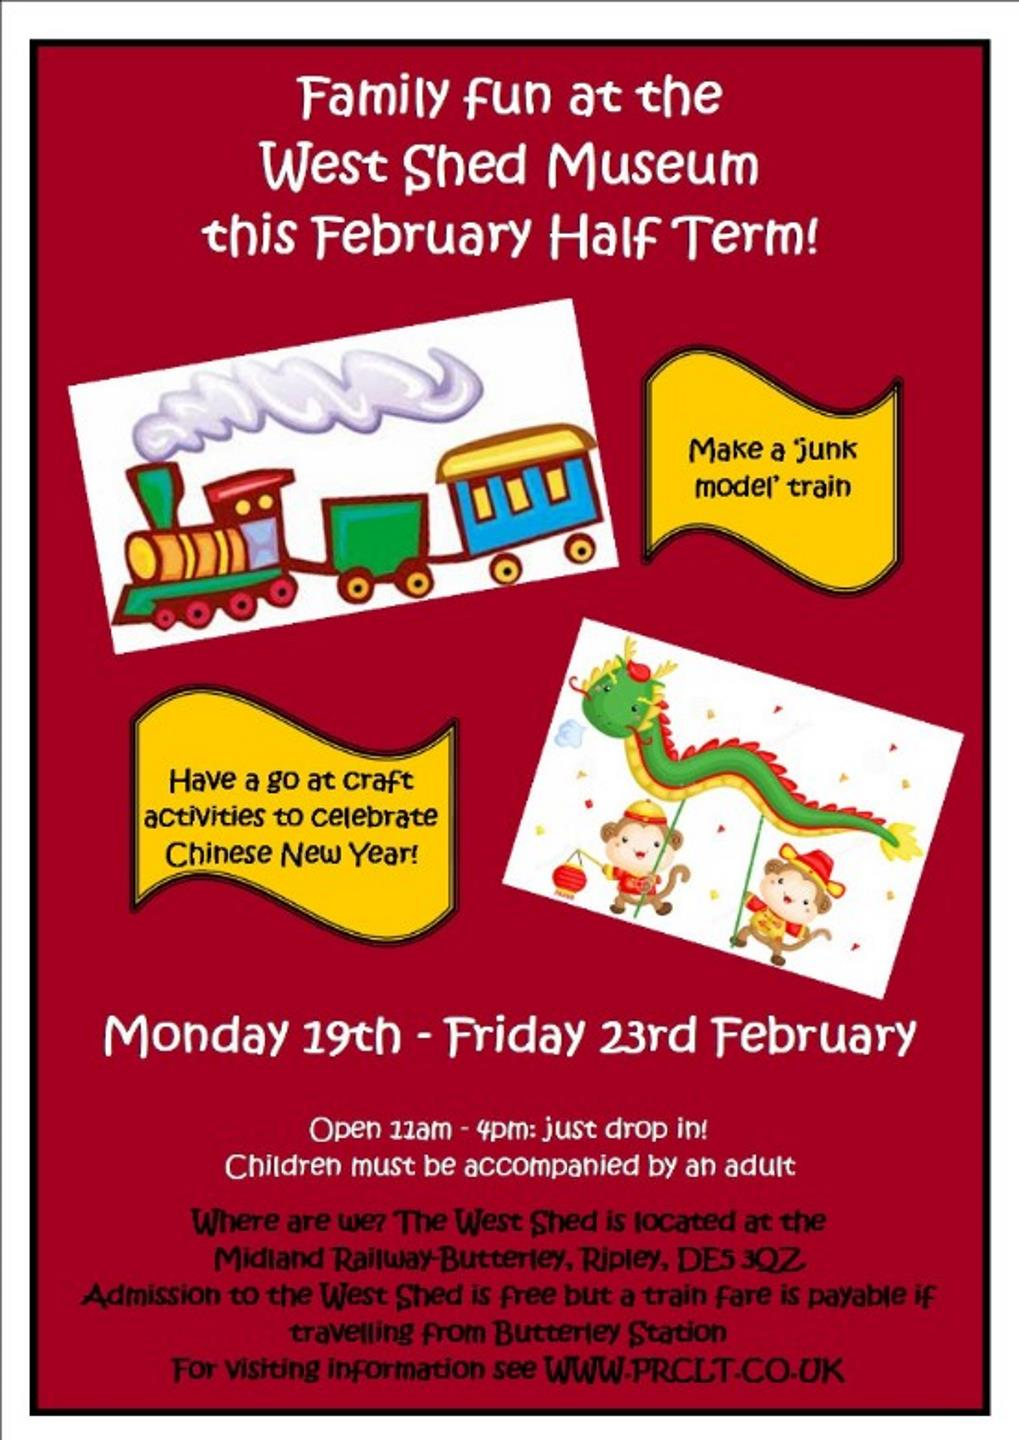 February Half Term Activities at West Shed // Credit West Shed